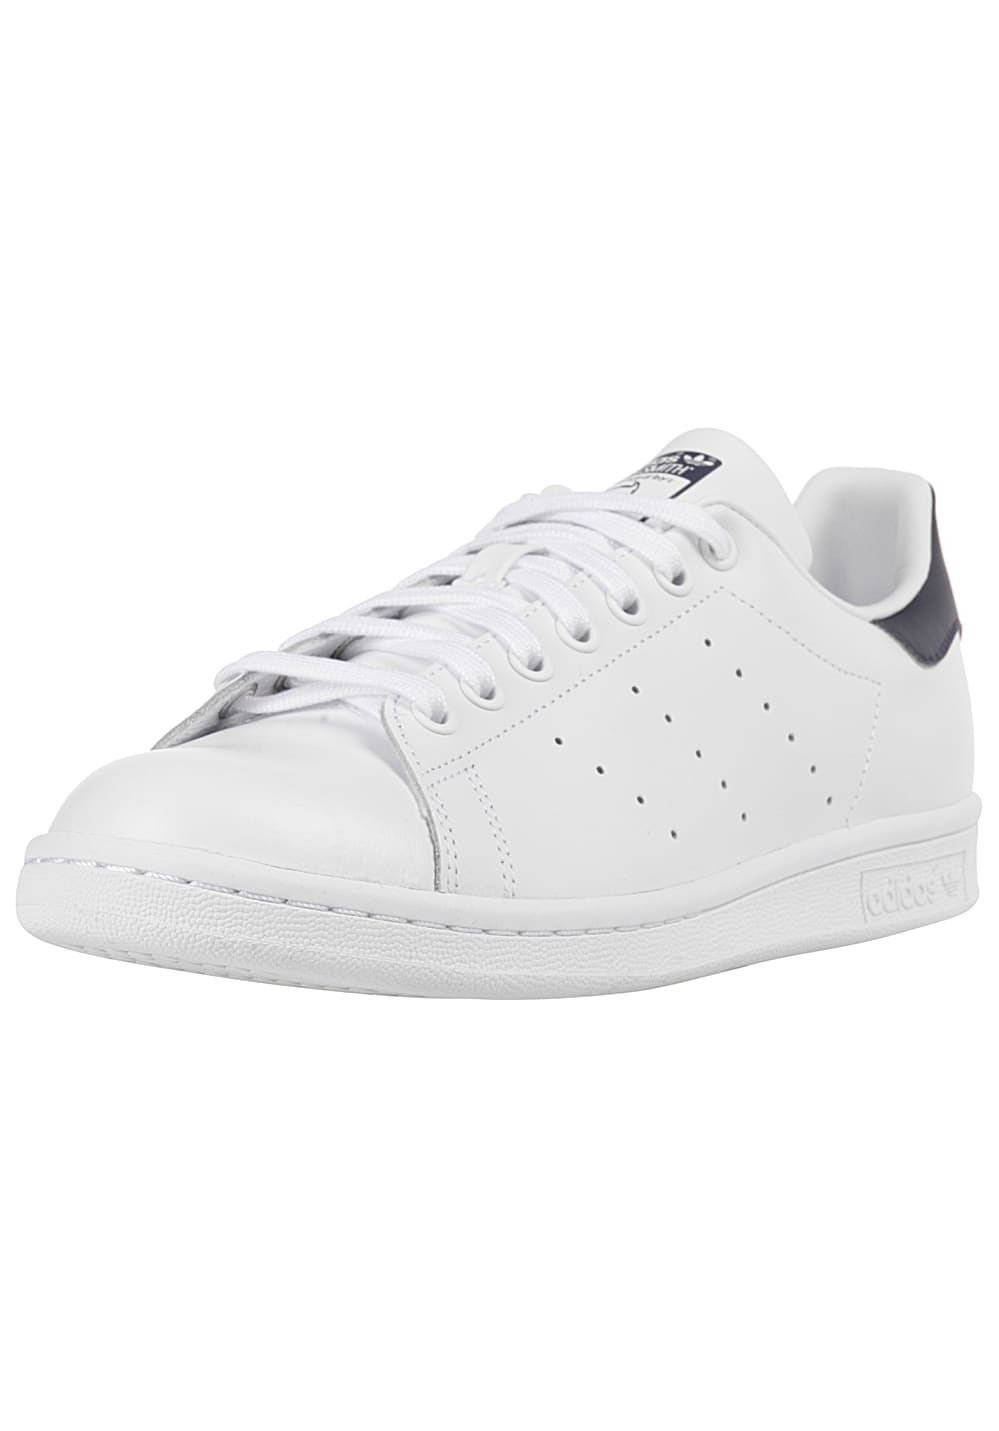 detailed pictures c81b3 fd045 ADIDAS ORIGINALS Stan Smith - Sneakers - White